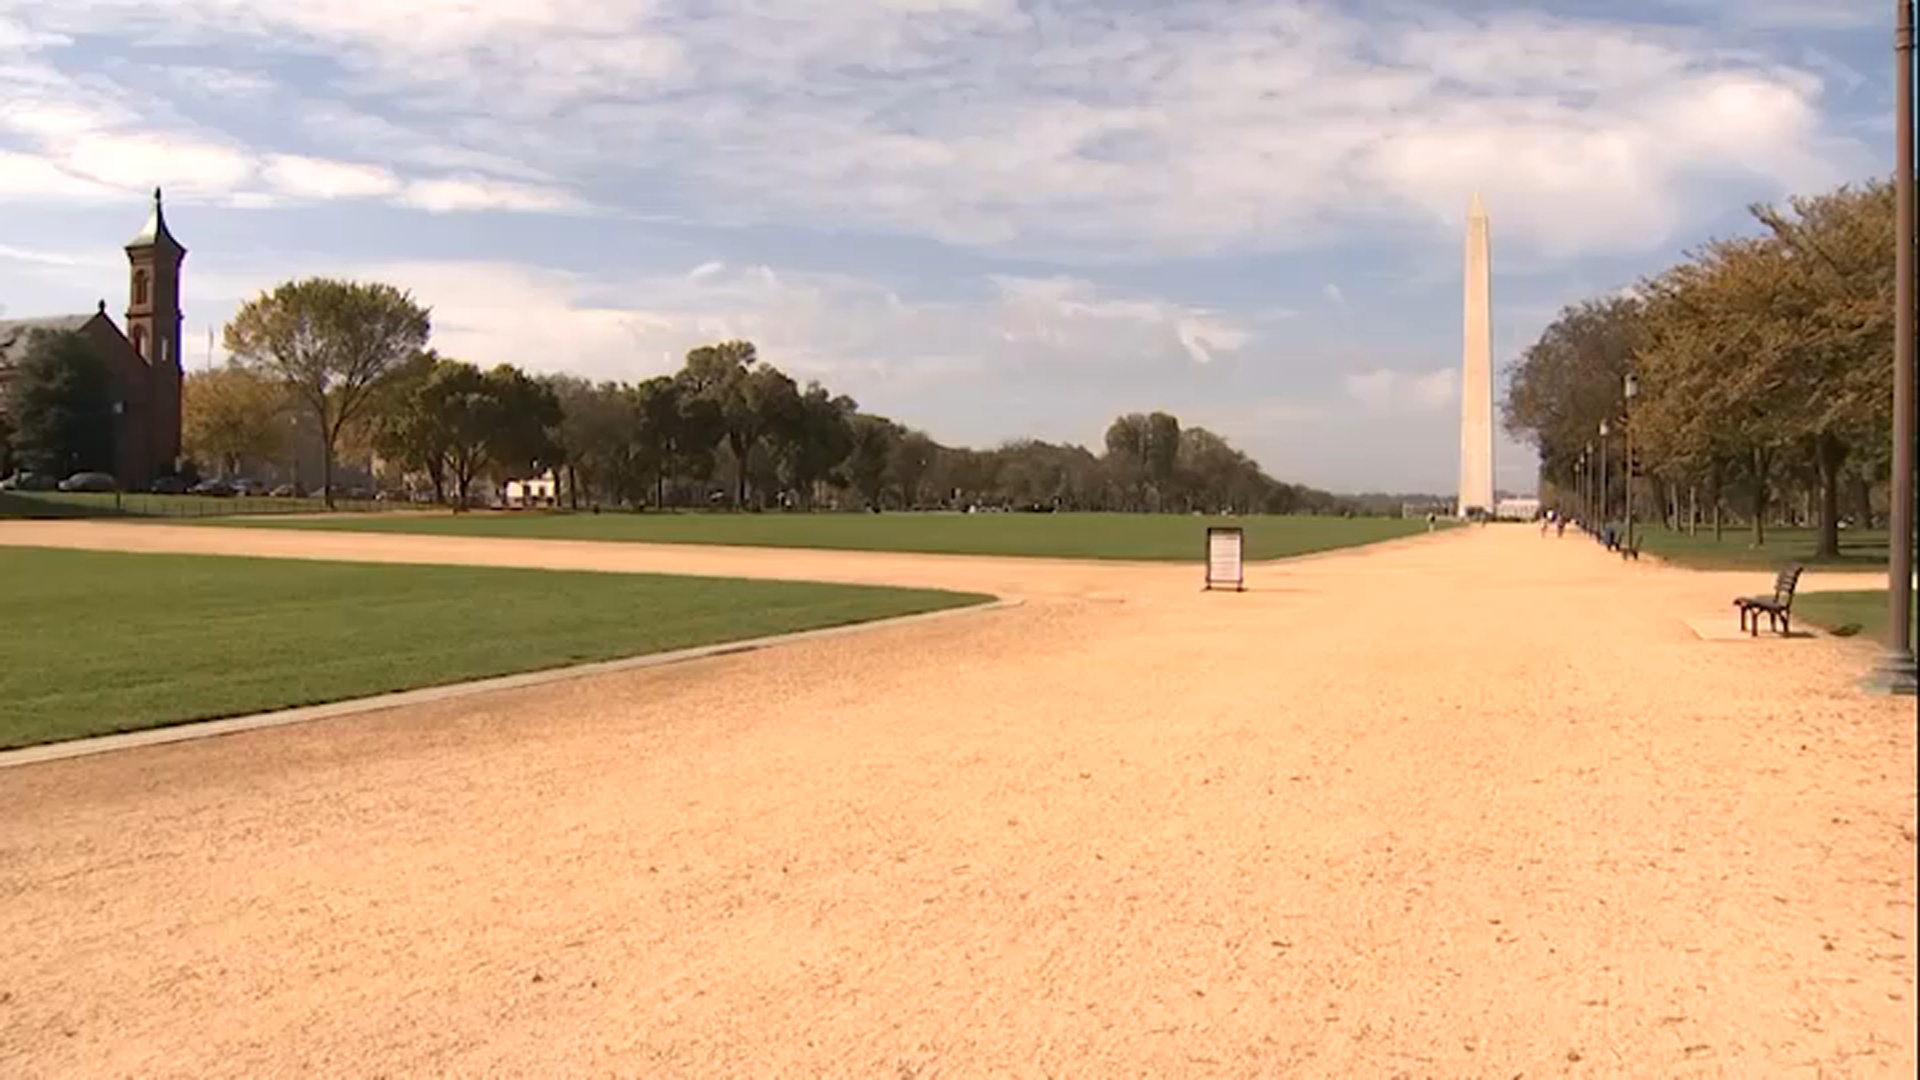 Worship Protest Planned for National Mall Prompts Super Spread Concerns